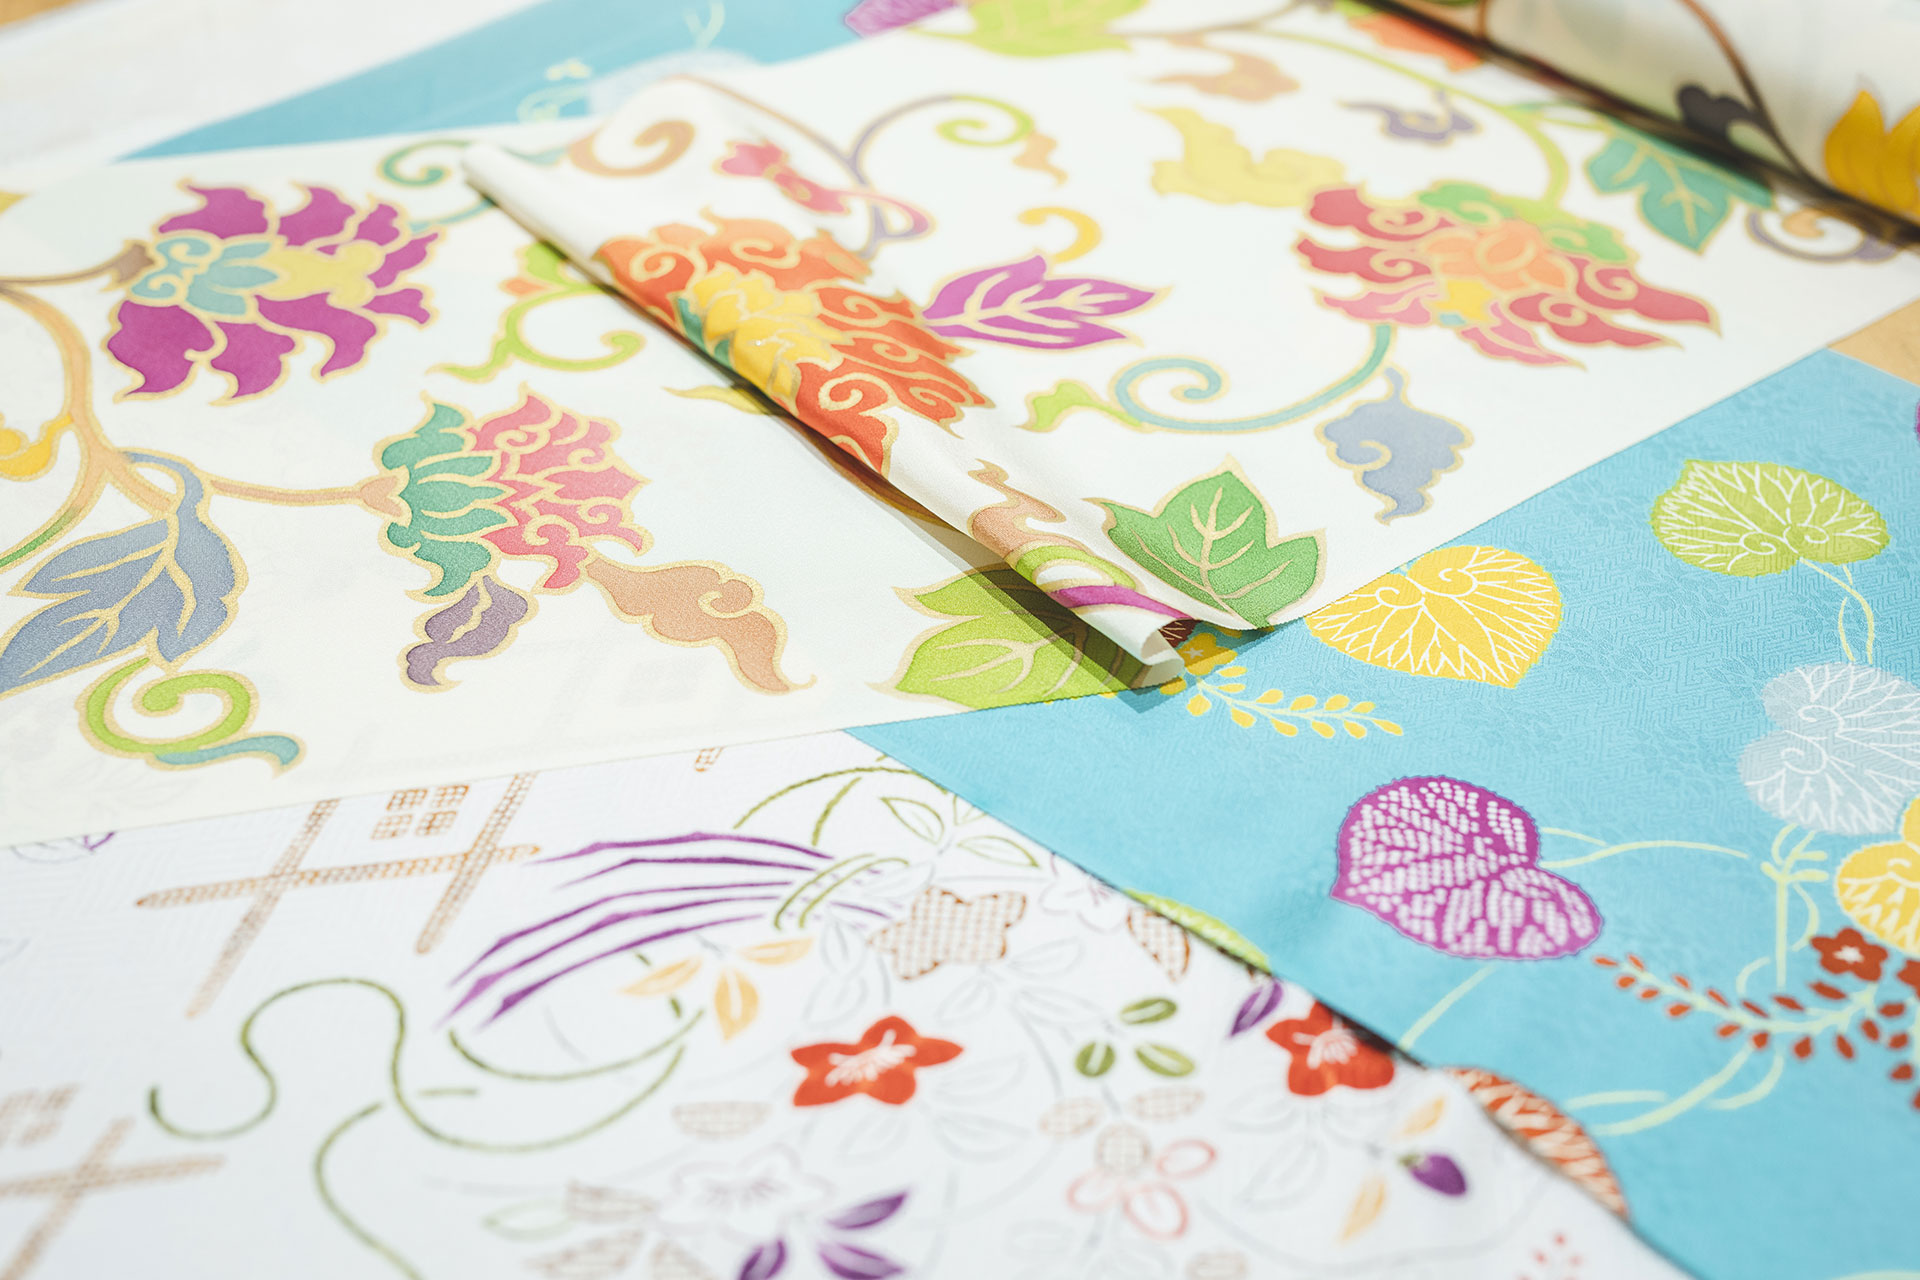 This beautiful kimono fabric is the masterpiece of the craftsmen's effort.